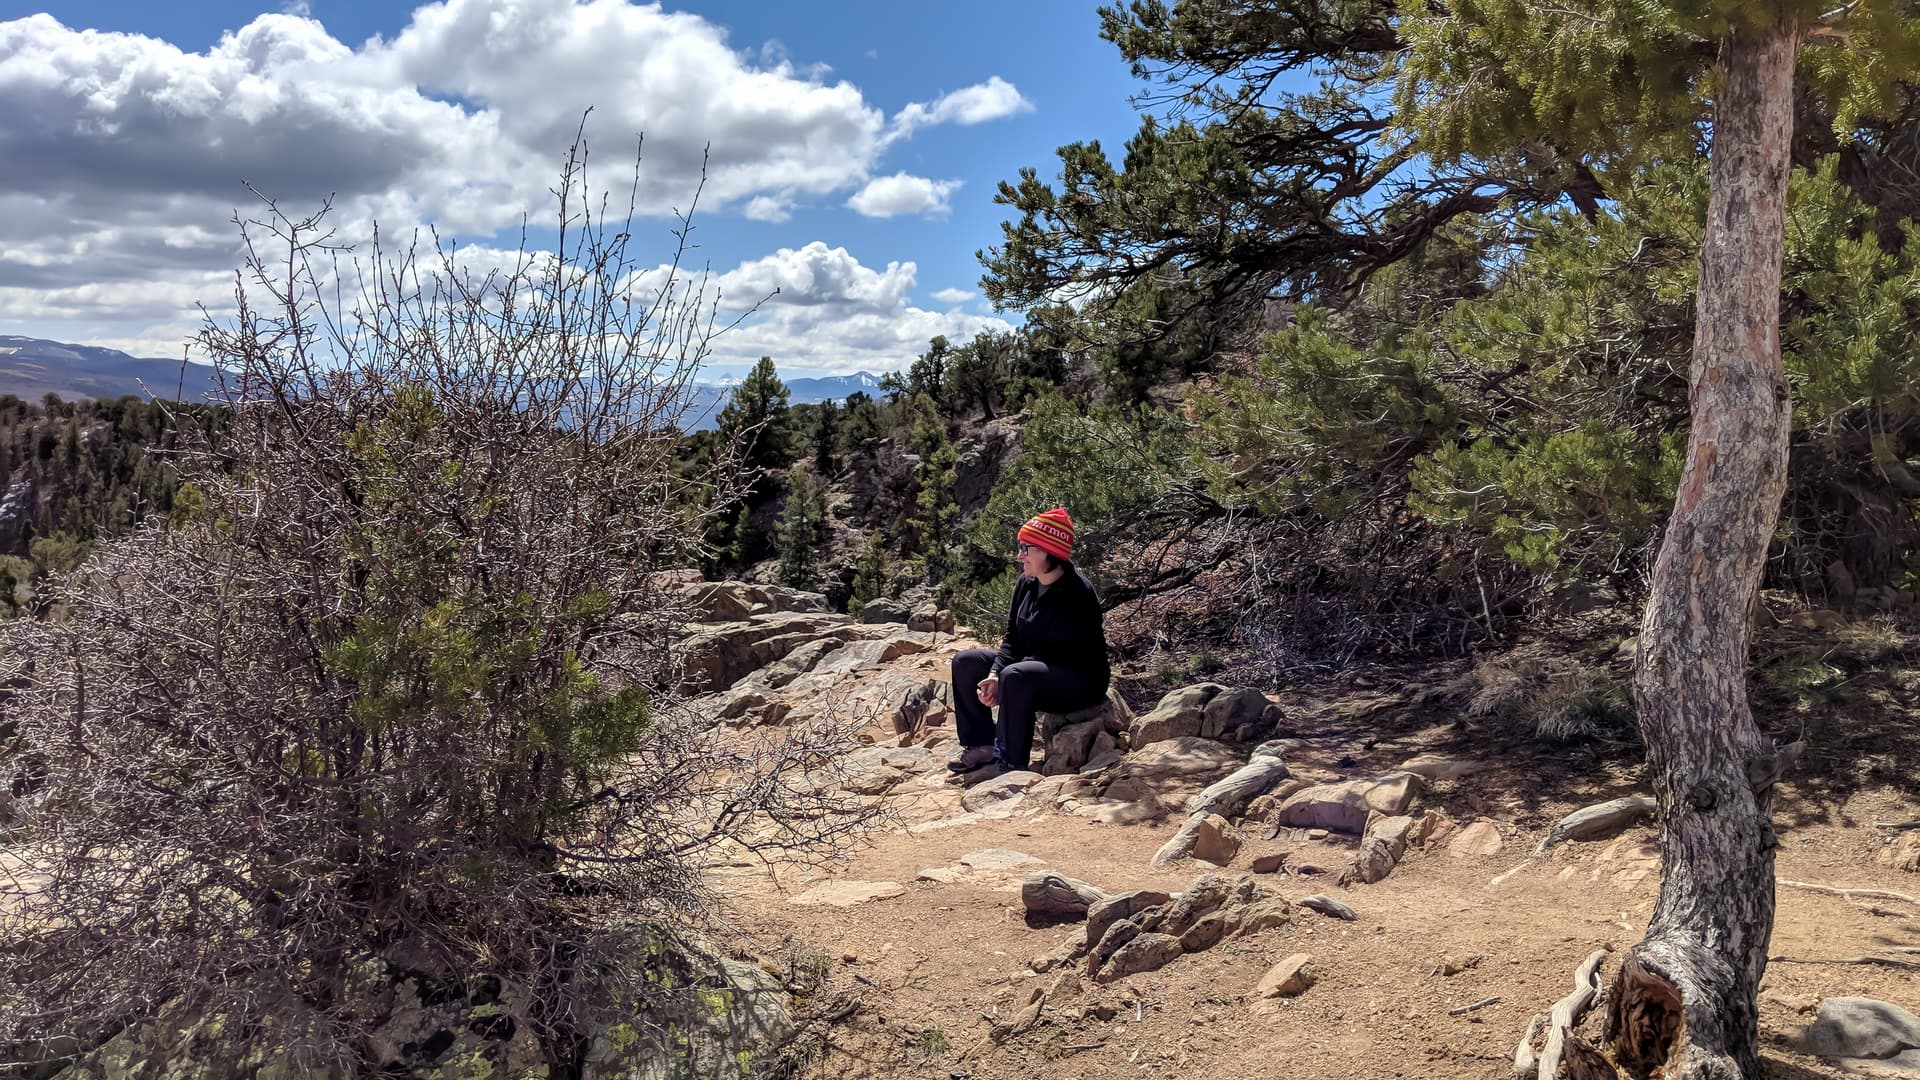 A color photograph of Len sitting on a rock just outside of a pine and juniper forest. She is dressed completely in black except for a shockingly bright orange hat.